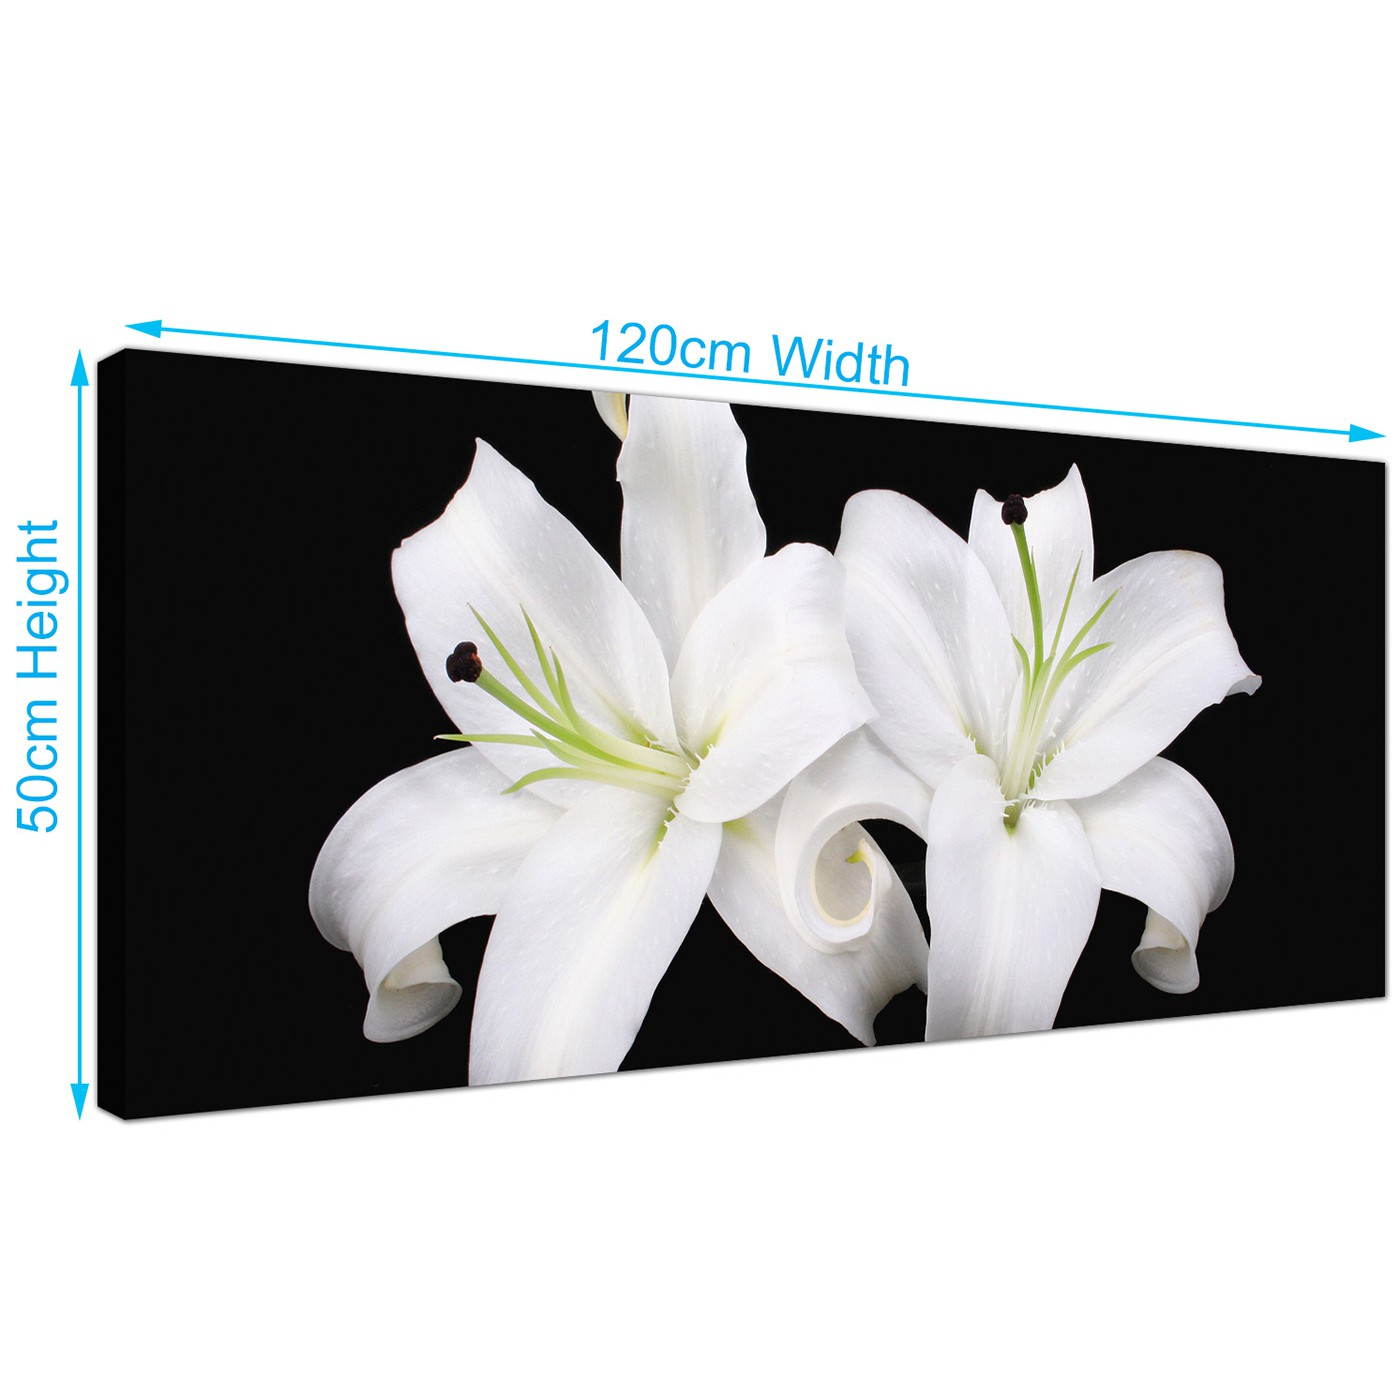 Large black and white canvas prints of lily flowers display gallery item 4 modern lily flowers canvas art 120cm x 50cm 1128 display gallery item 5 black white living room extra large mightylinksfo